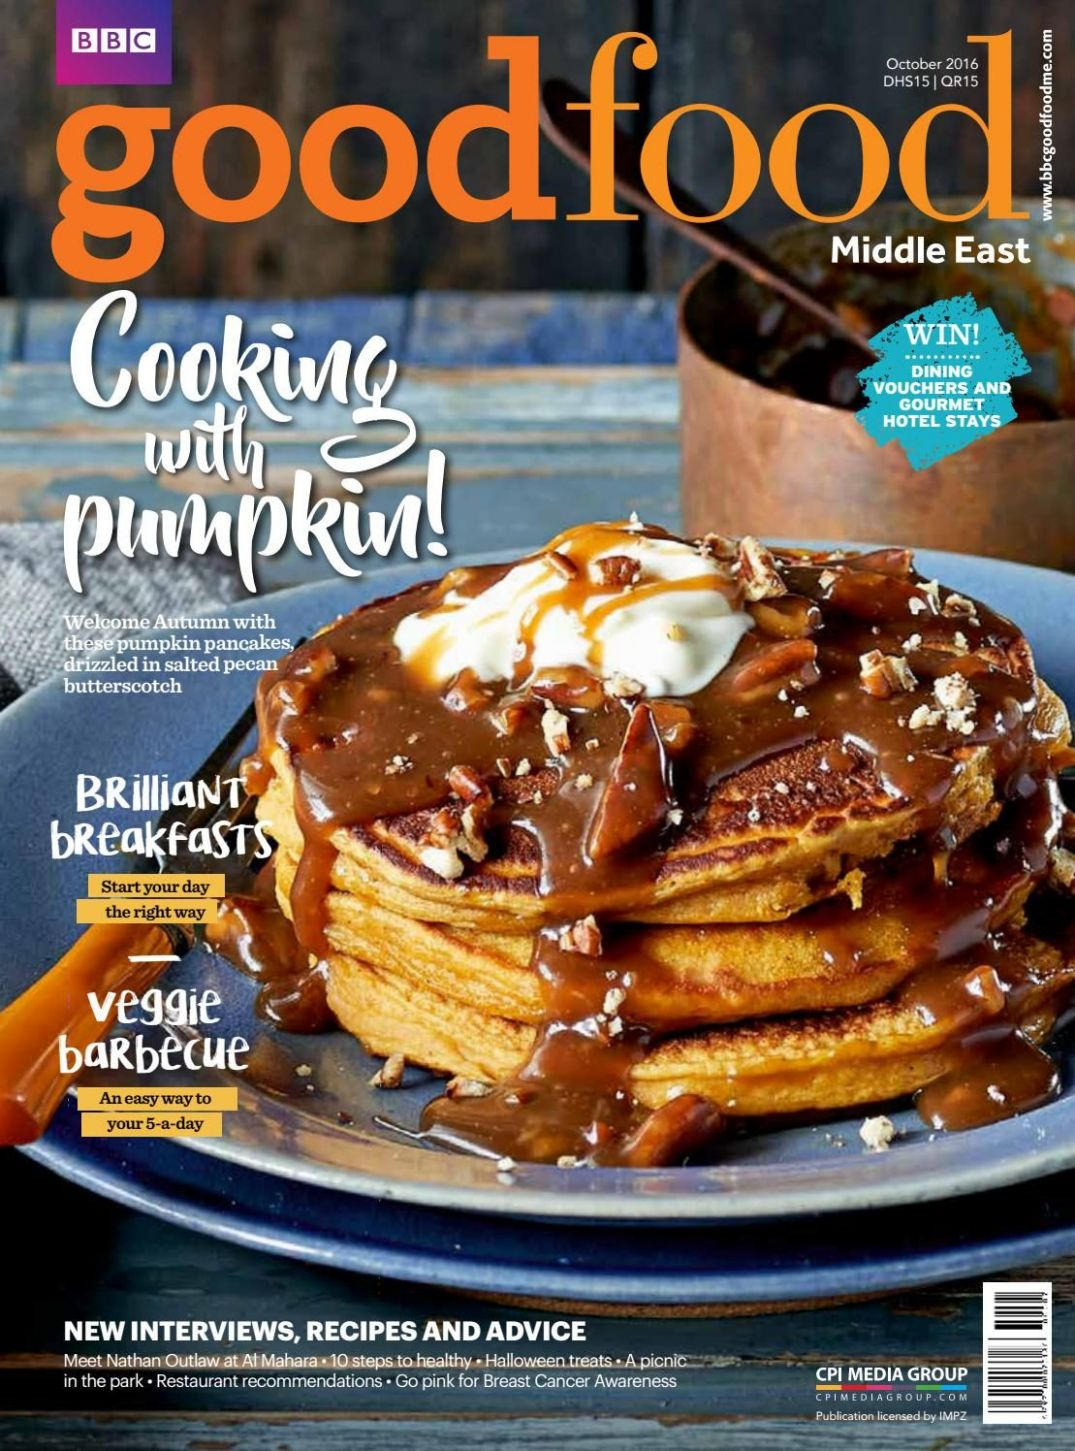 BBC Good Food ME - 12 October in 12 | Bbc good food recipes ..